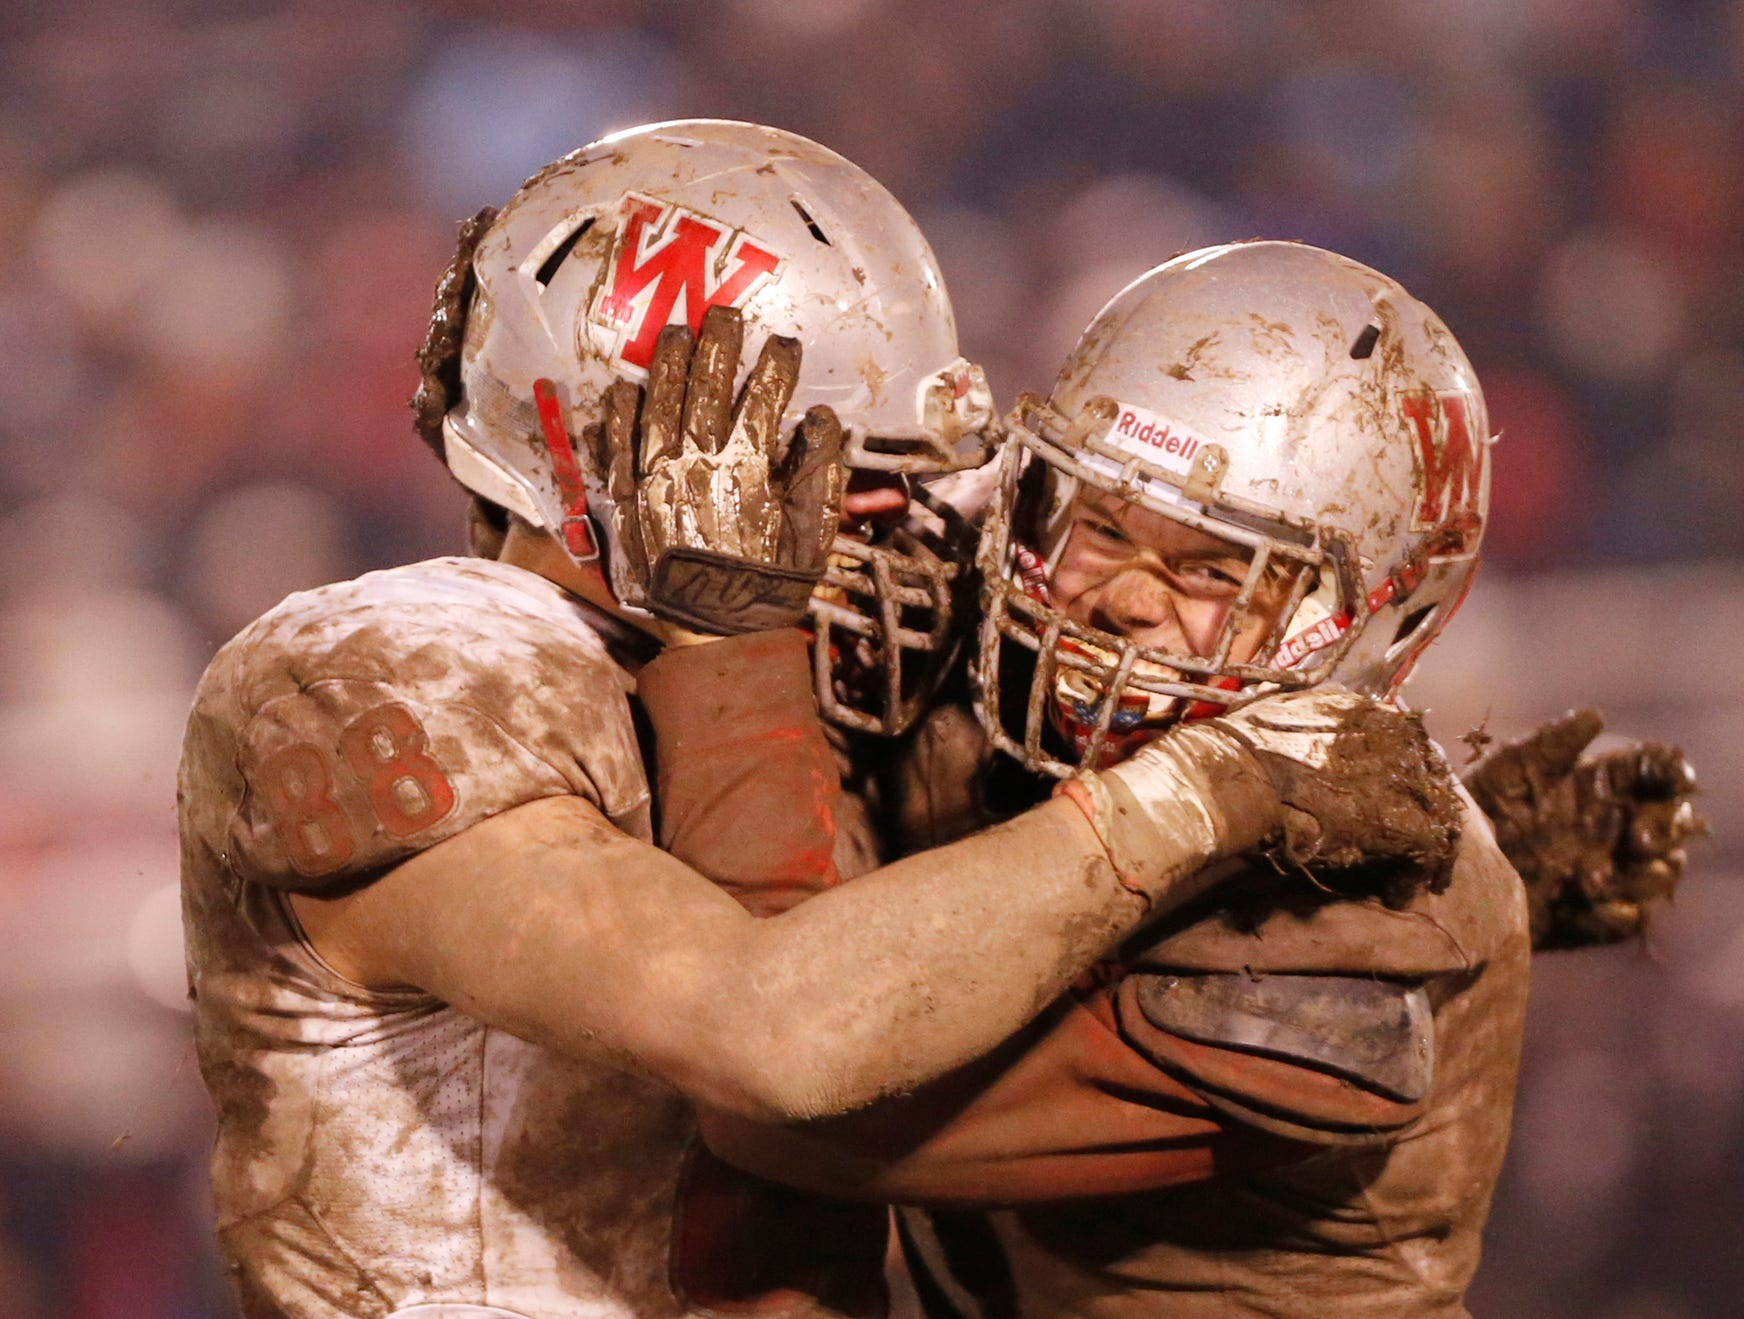 George Karlaftis, left, and Ben Szymanski of West Lafayette celebrate after Ft. Wayne Bishop Luers turns the ball over on downs Friday, November 16, 2018, in Ft. Wayne. West Lafayette scored 27 unanswered points in the second half to come from behind and defeat Bishop Luers 27-14.